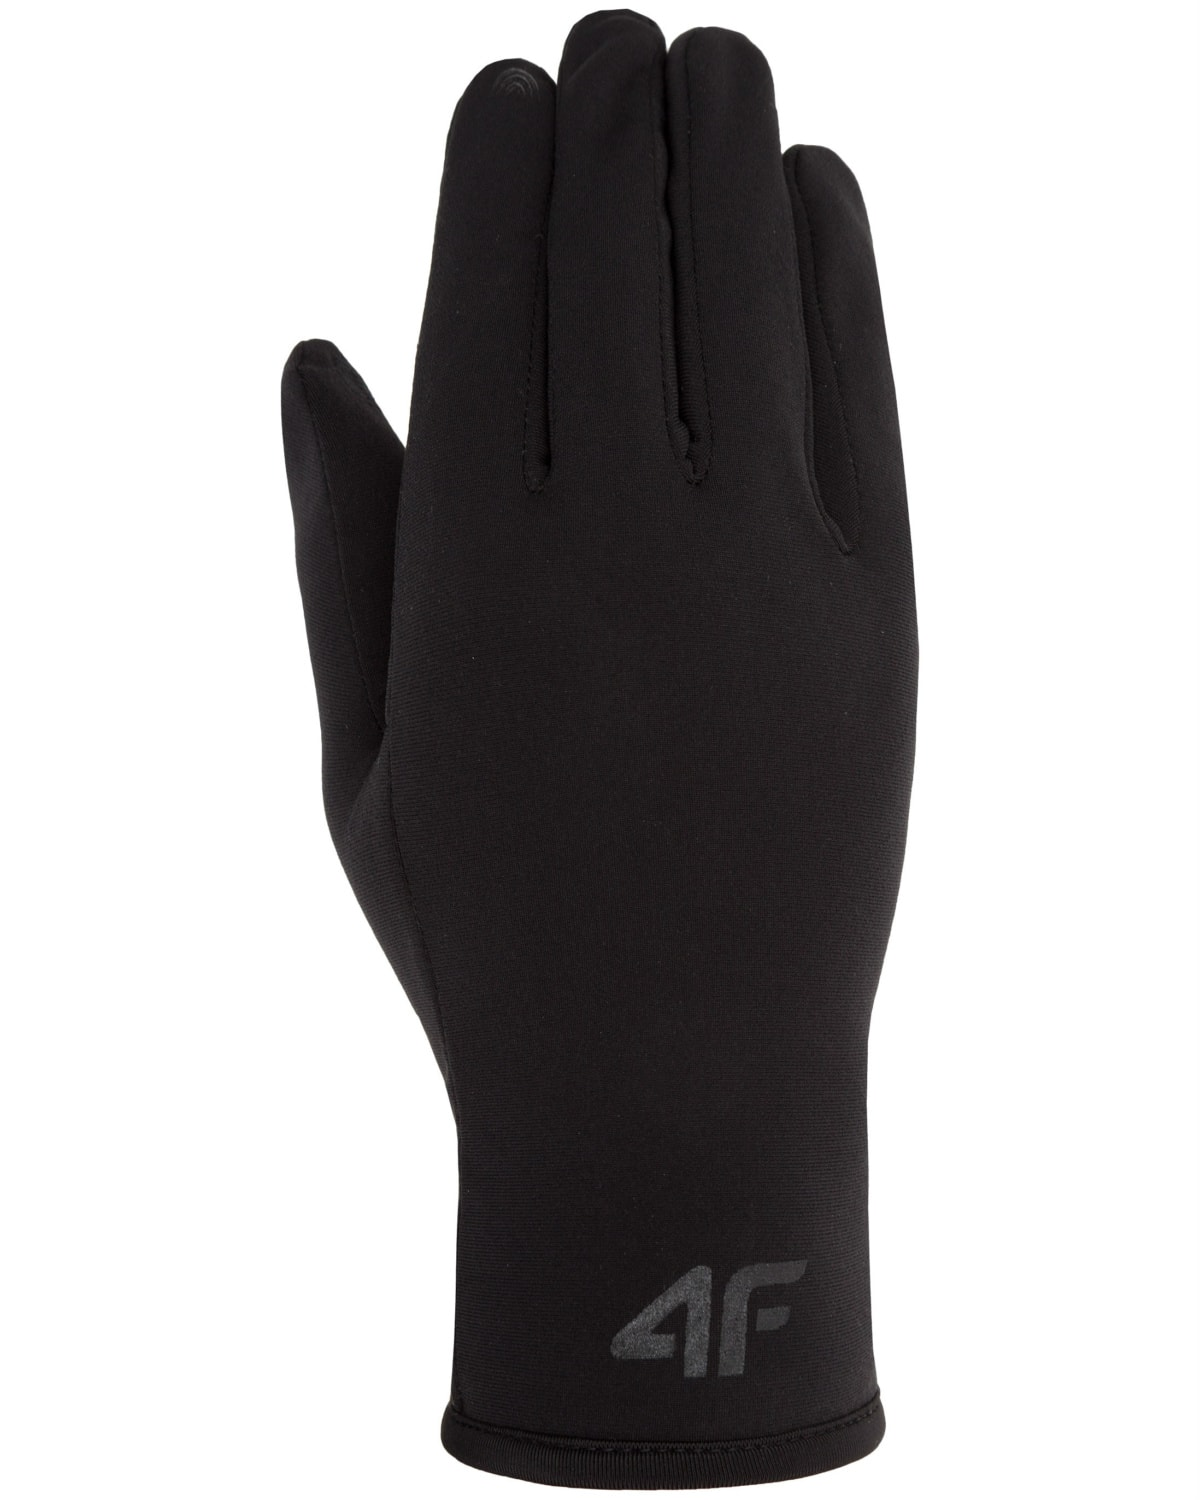 4F Gloves X4Z18-REU202-DEEP_BLACK